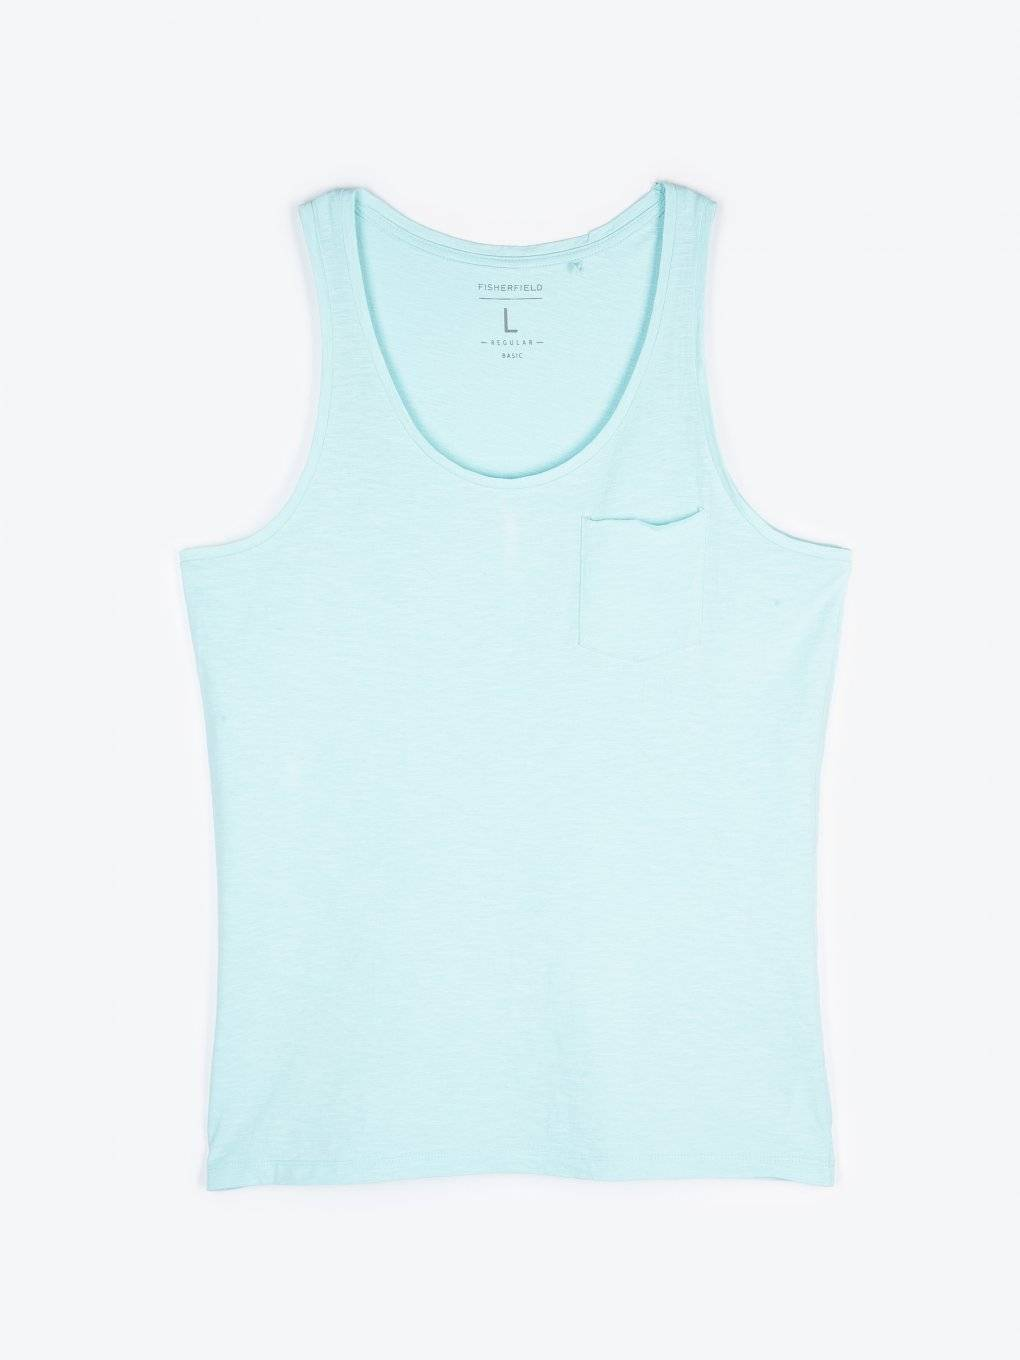 Tank with chest pocket